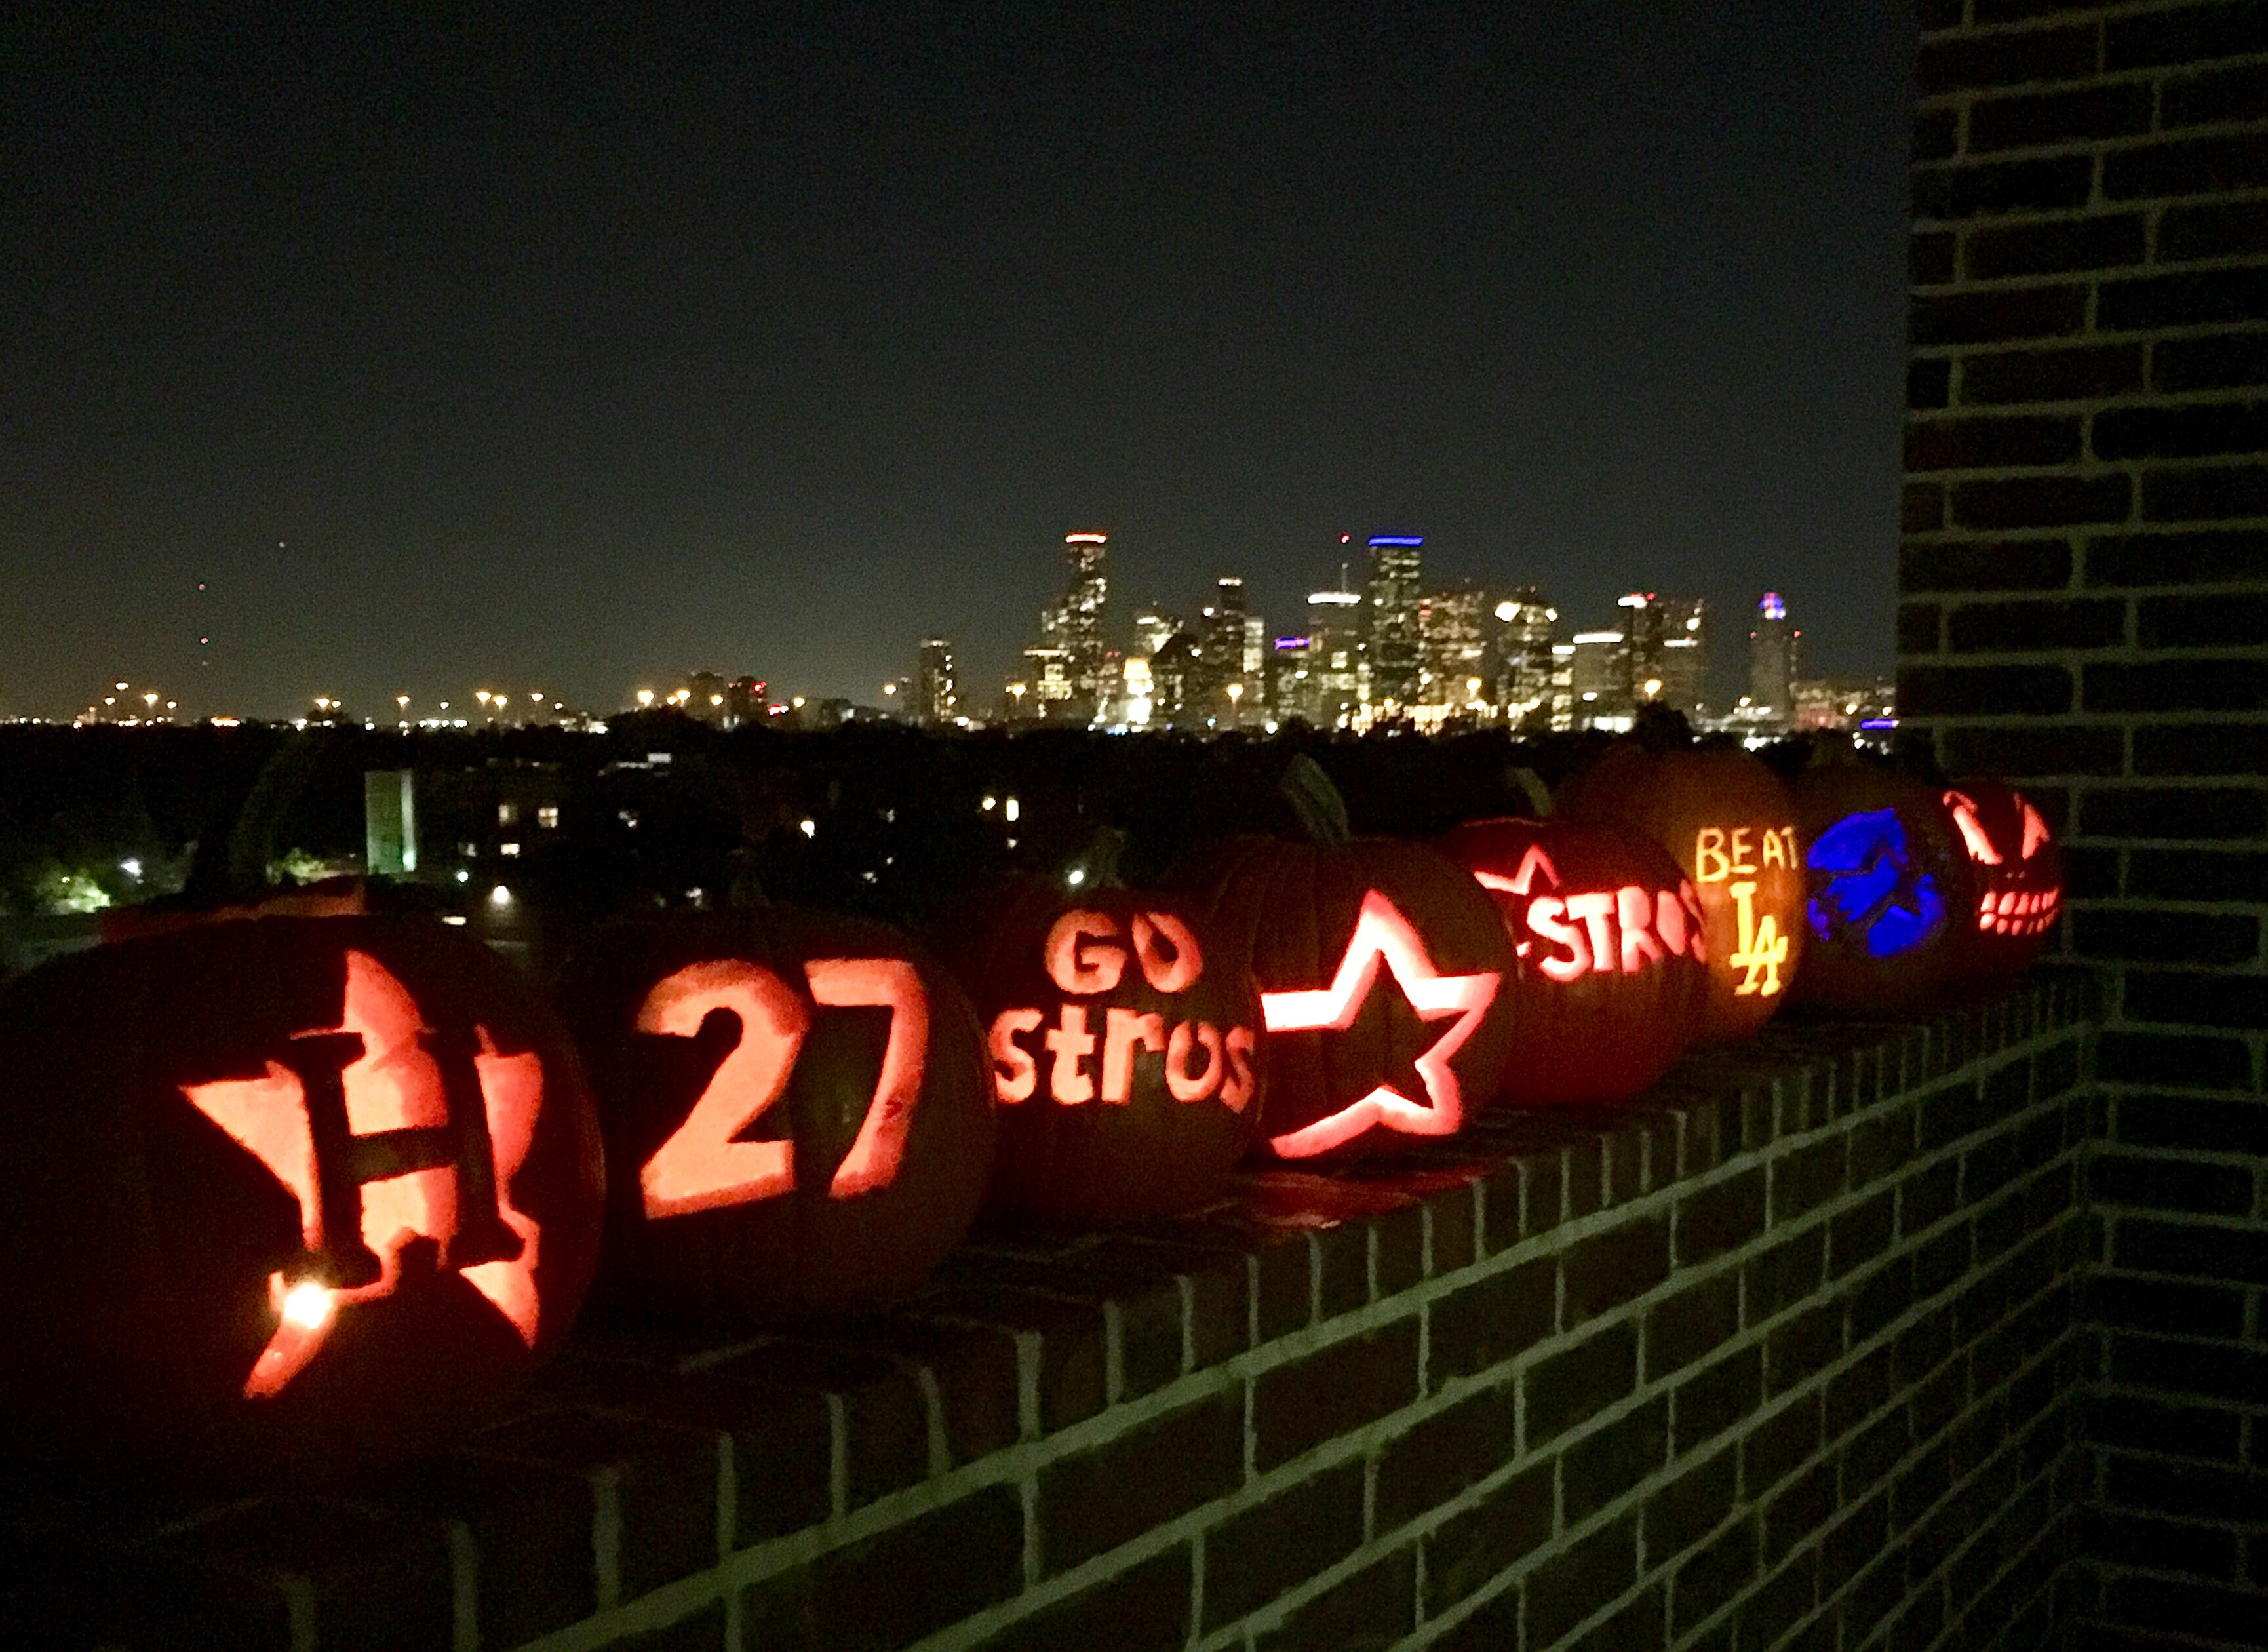 <div class='meta'><div class='origin-logo' data-origin='KTRK'></div><span class='caption-text' data-credit=''>Take a look at some of great pumpkin carving creations</span></div>